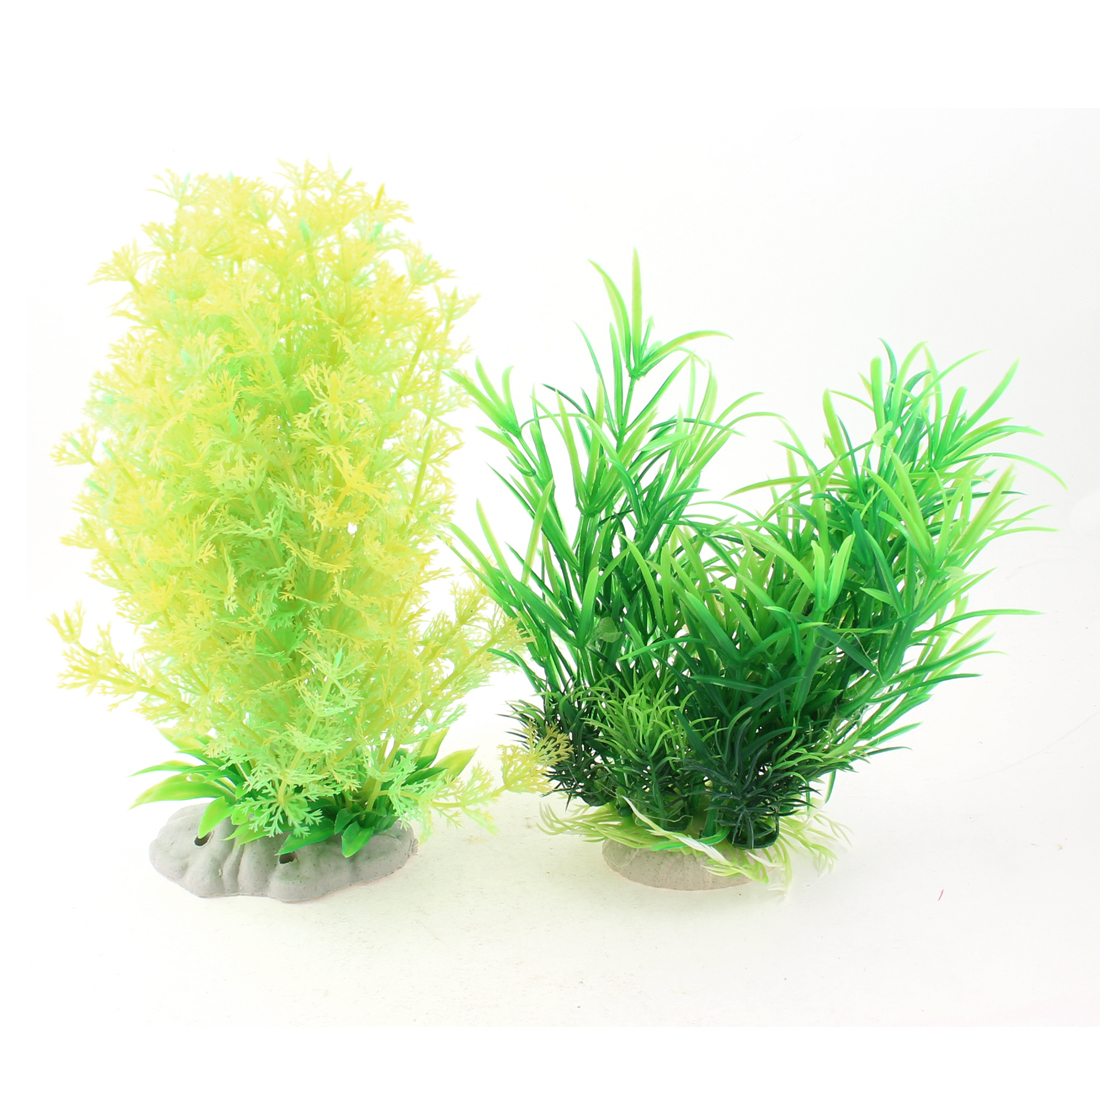 2-Pcs-Yellow-Green-Plastic-Plants-Waterweeds-Decor-9-for-Aquarium-Fish-Tank